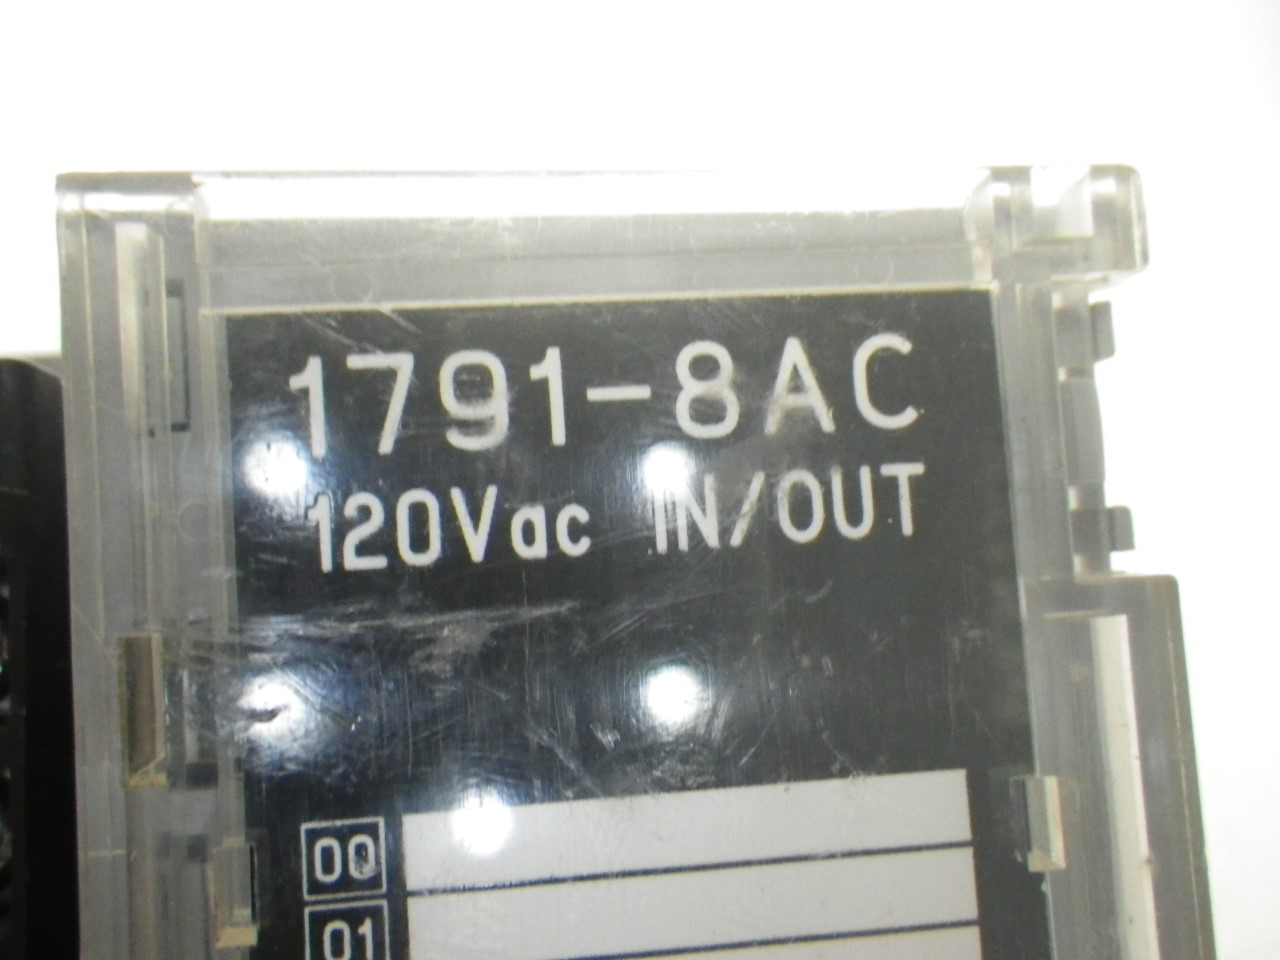 IMGP83251791-8AC Allen Bradley 1791-8ac Series b Block Io Module 120v (Used Tested) (10)